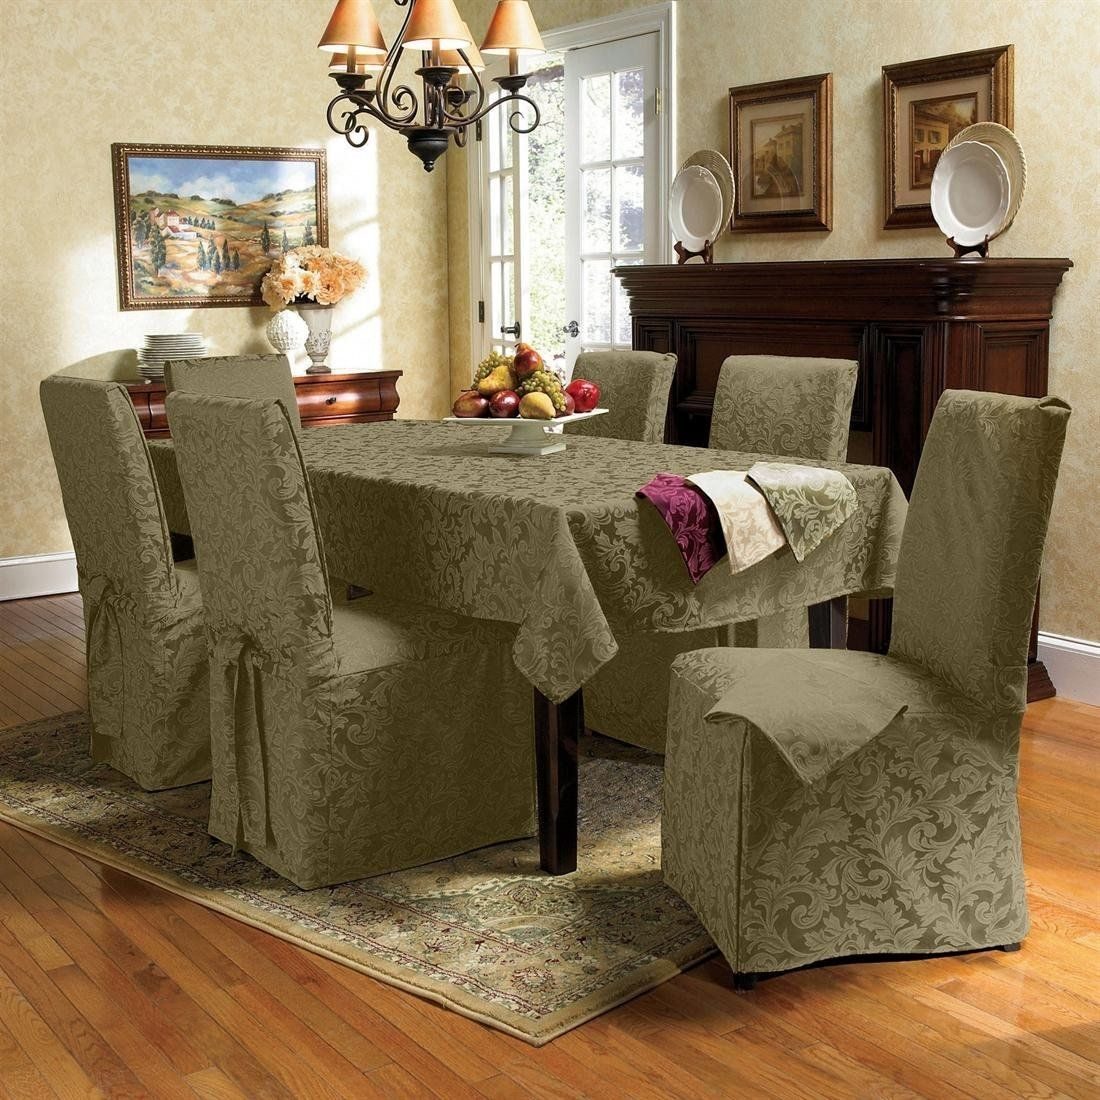 Extra Large Dining Room Chair Covers  Httpenricbataller Awesome Large Dining Room Chair Covers Decorating Design